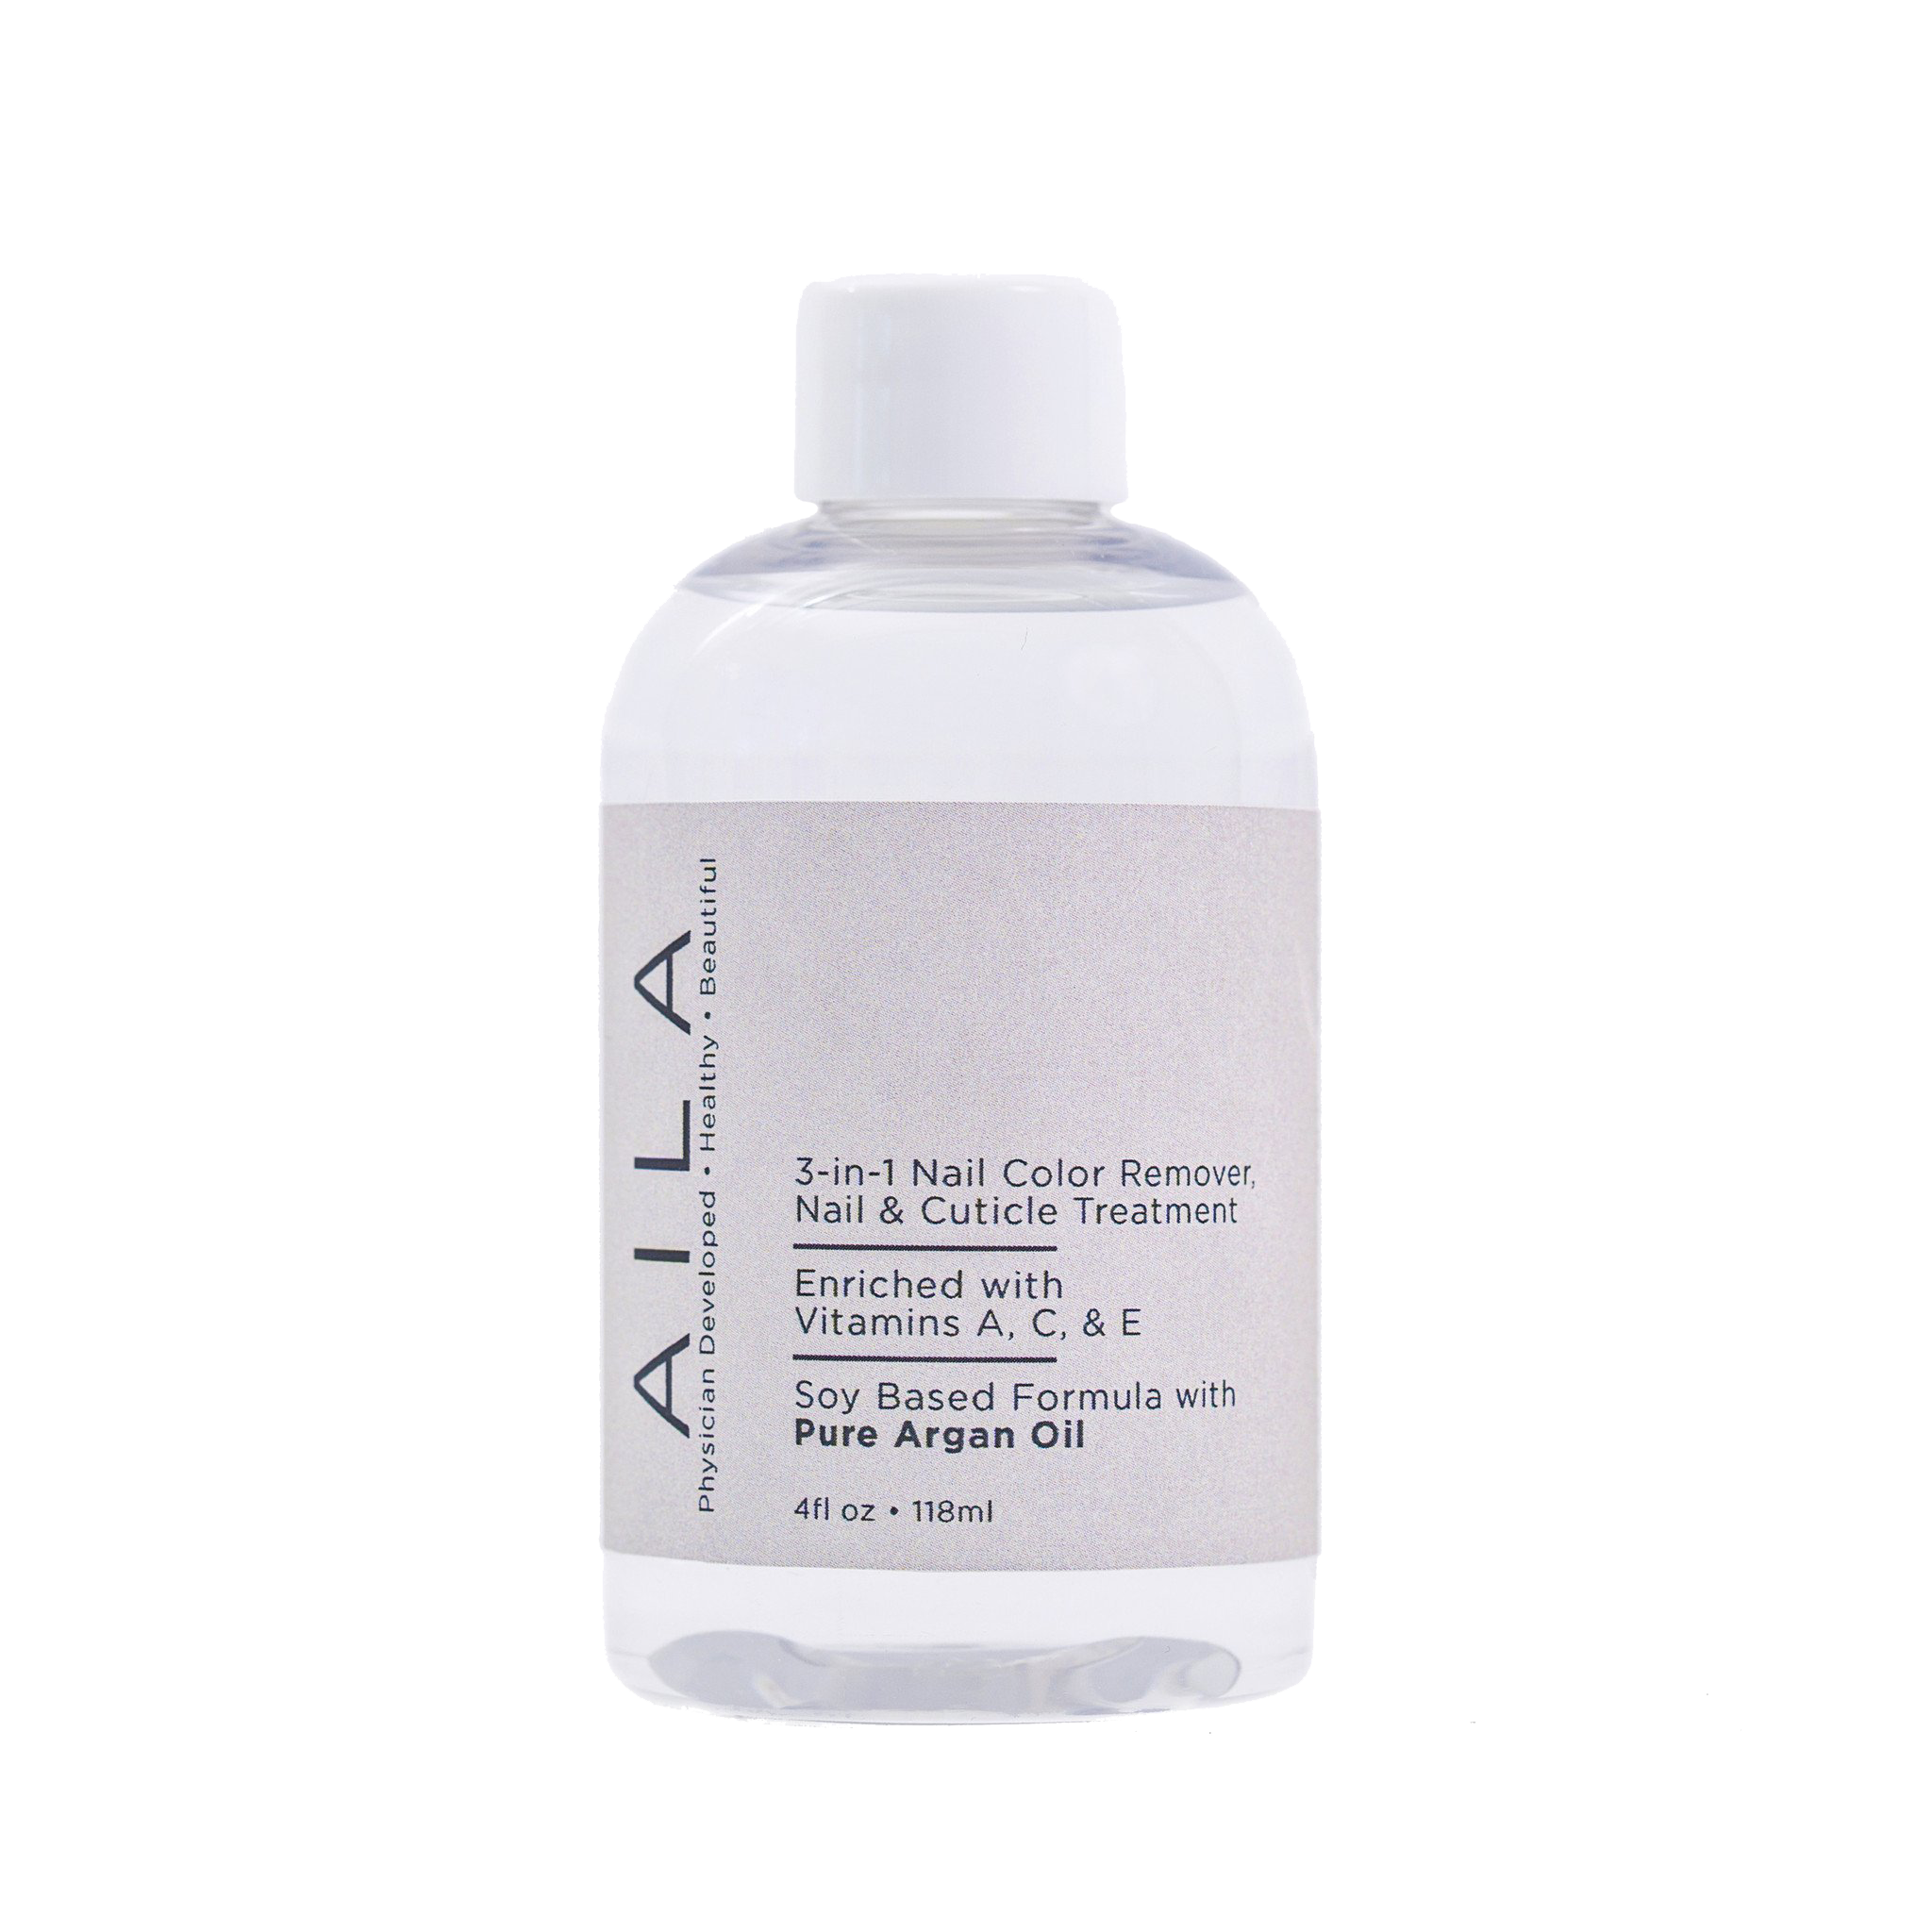 AILA 3-in-1 Nail Color Remover